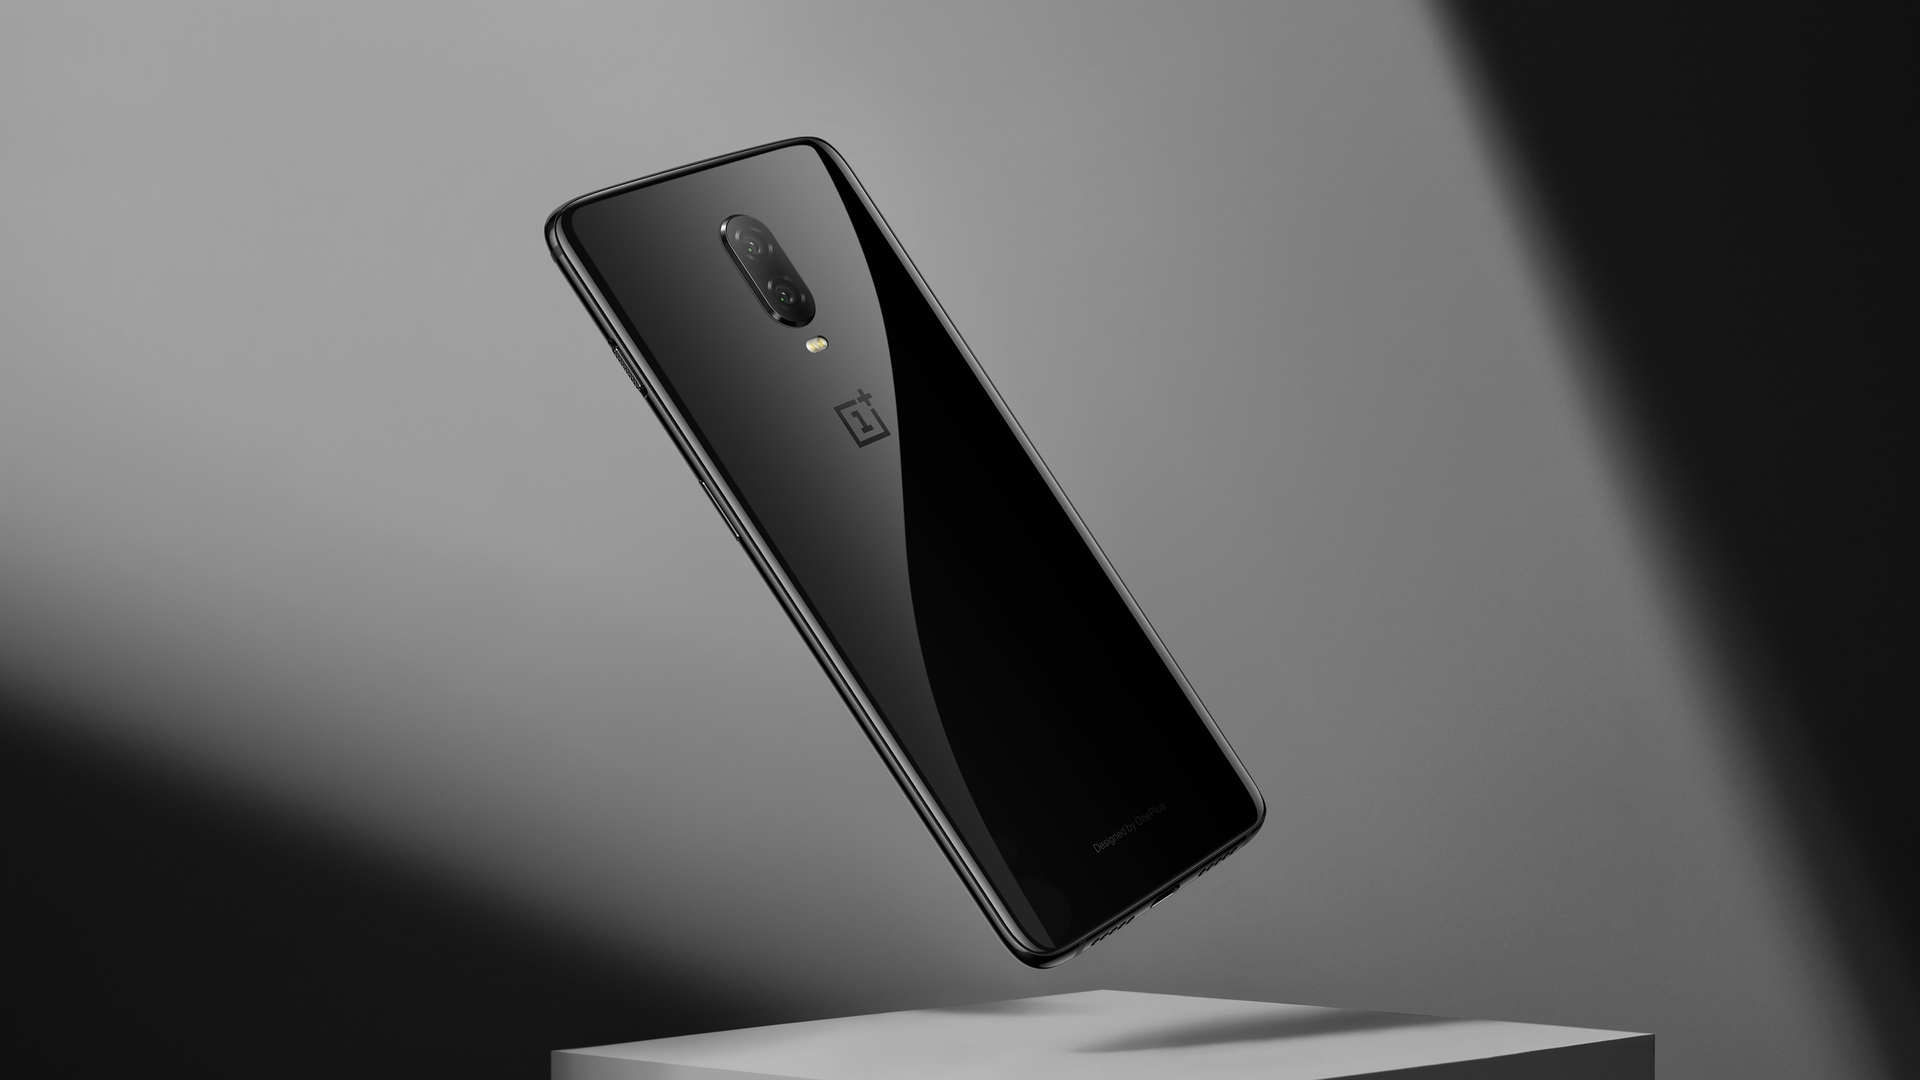 OnePlus-6T-WHy-not-buy-this-great-device-title-2